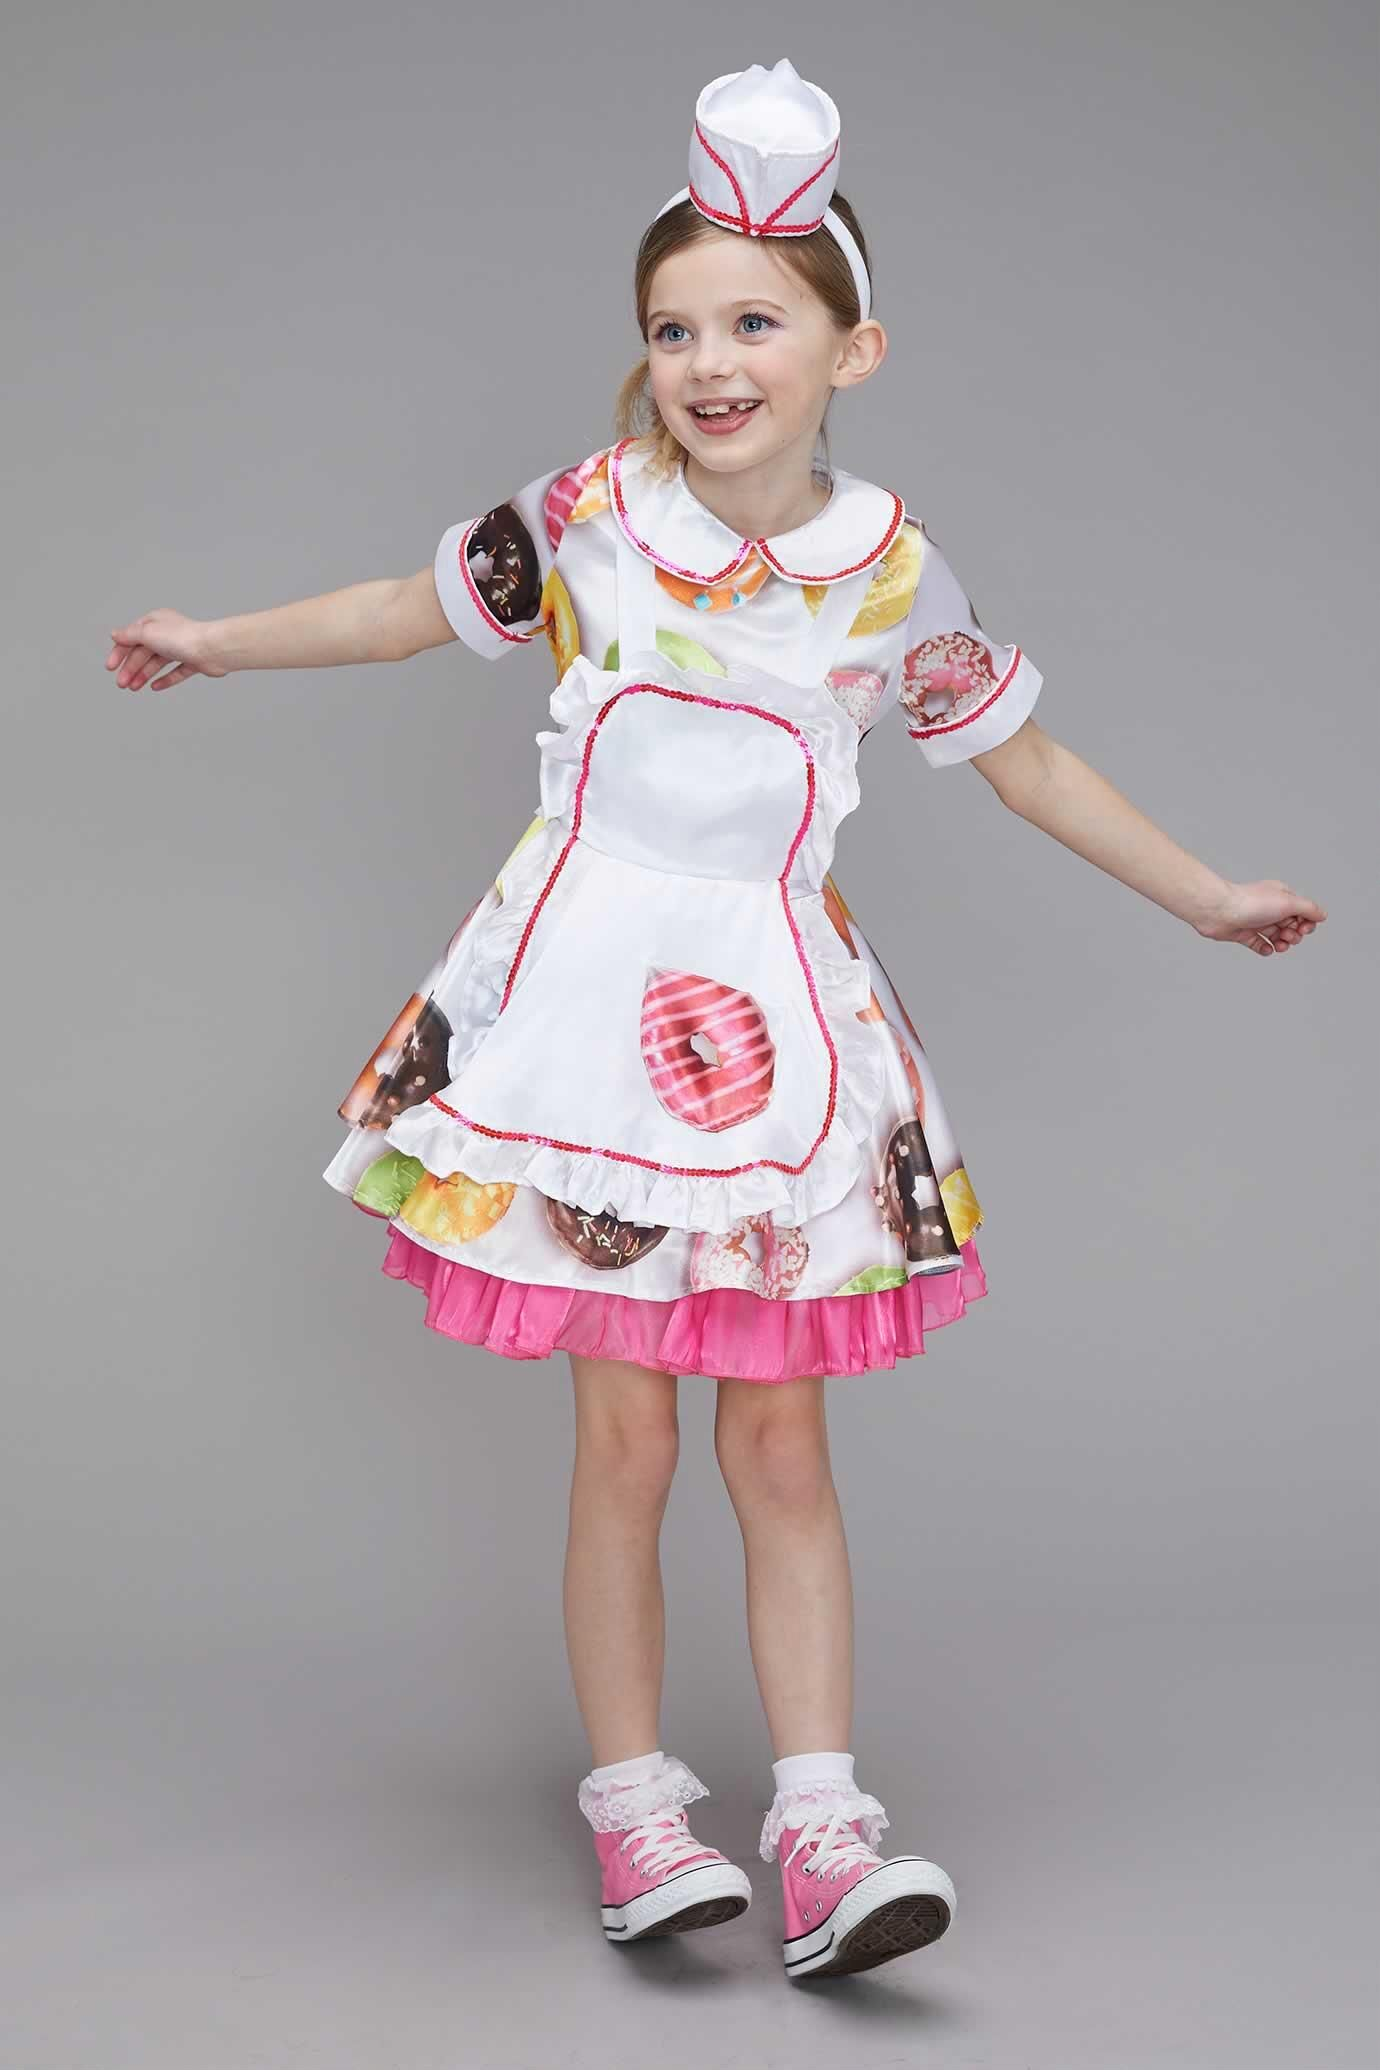 d0148a9fbb33 Donut Waitress Costume for Girls   Chasingfireflies  59.00 10.00 40.00 -   60.00